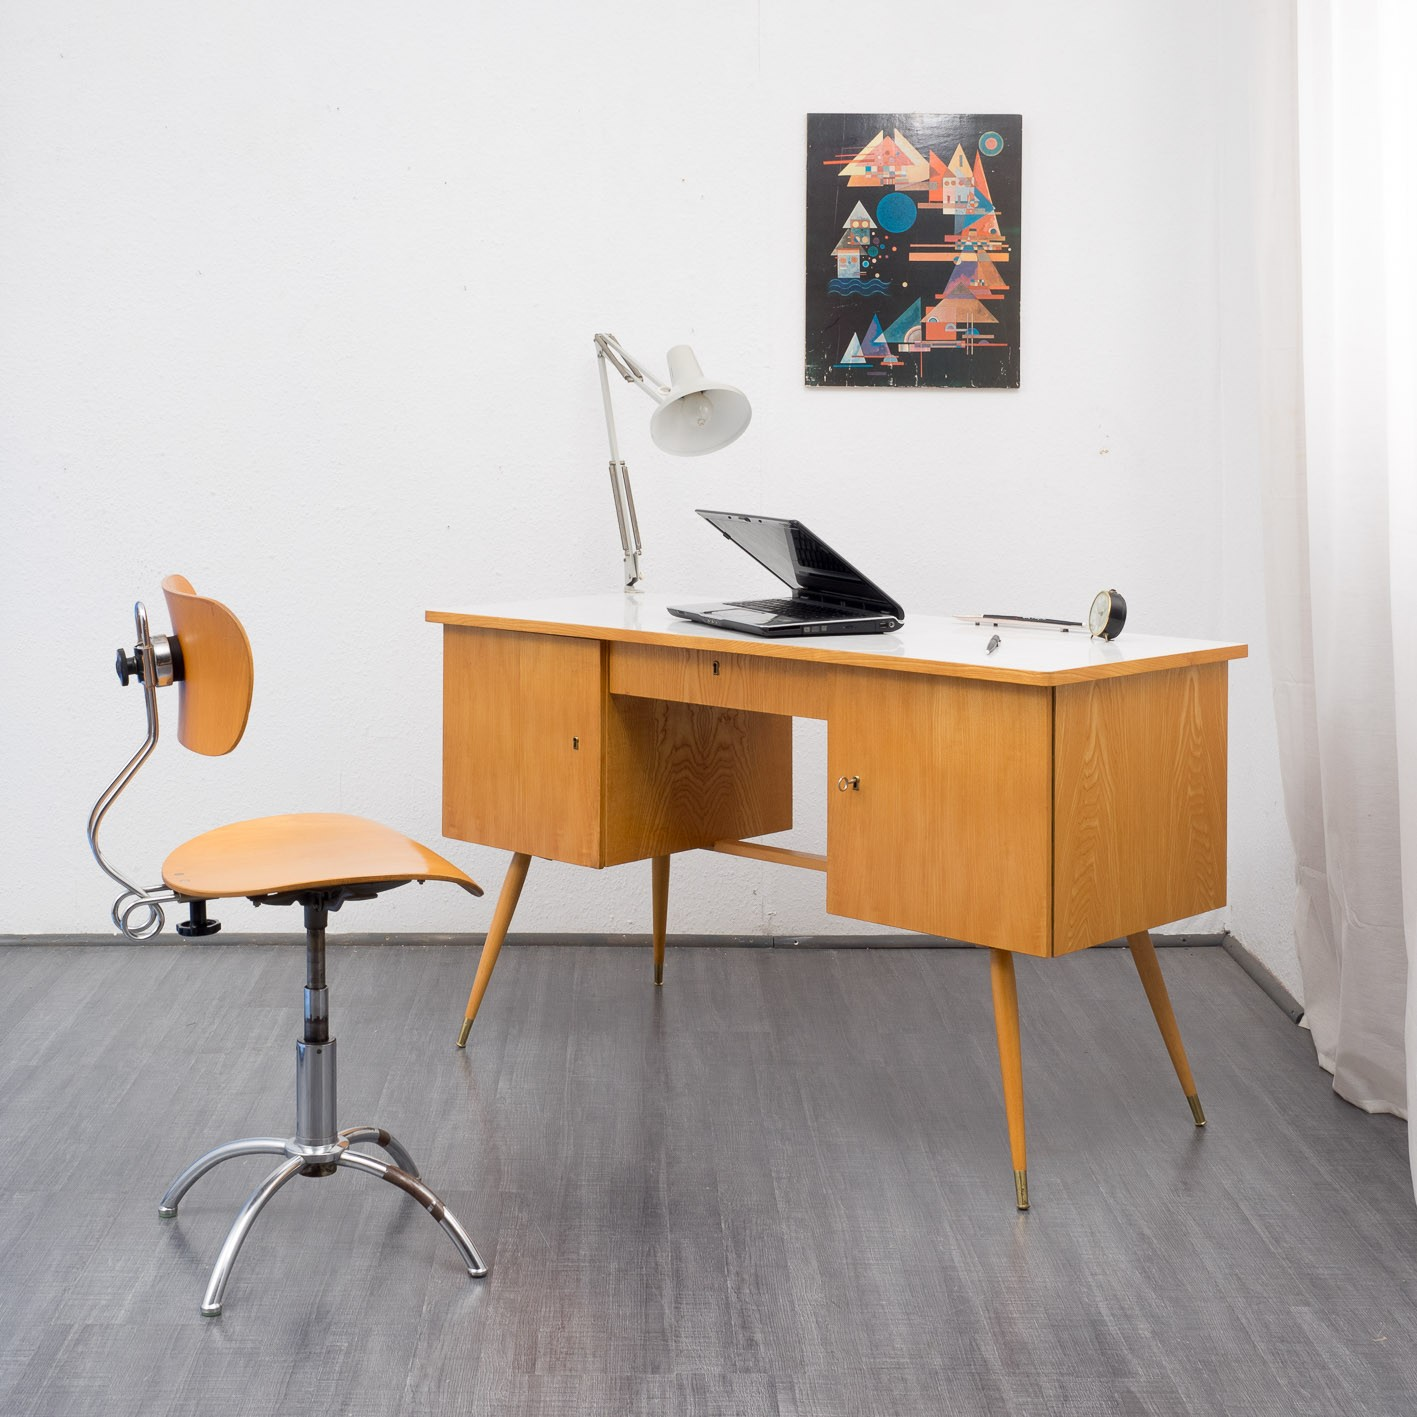 Vintage Desk Chair In Plywood And Metal 1950s Previous Next